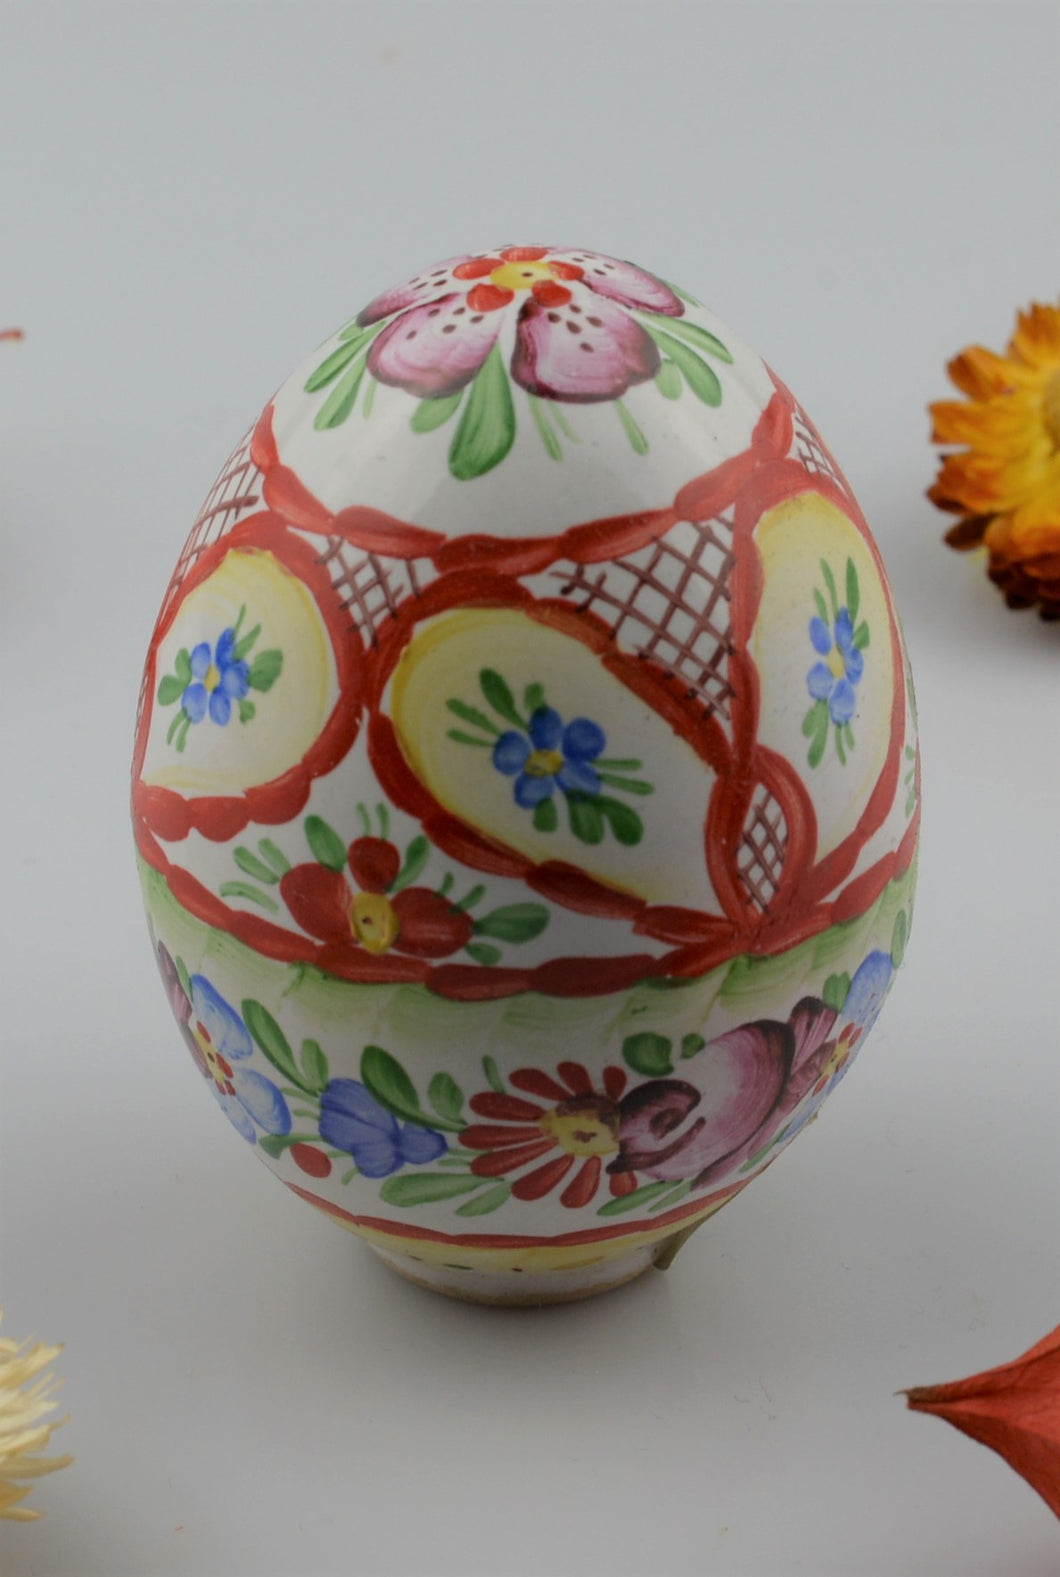 Ceramic egg - hand painted